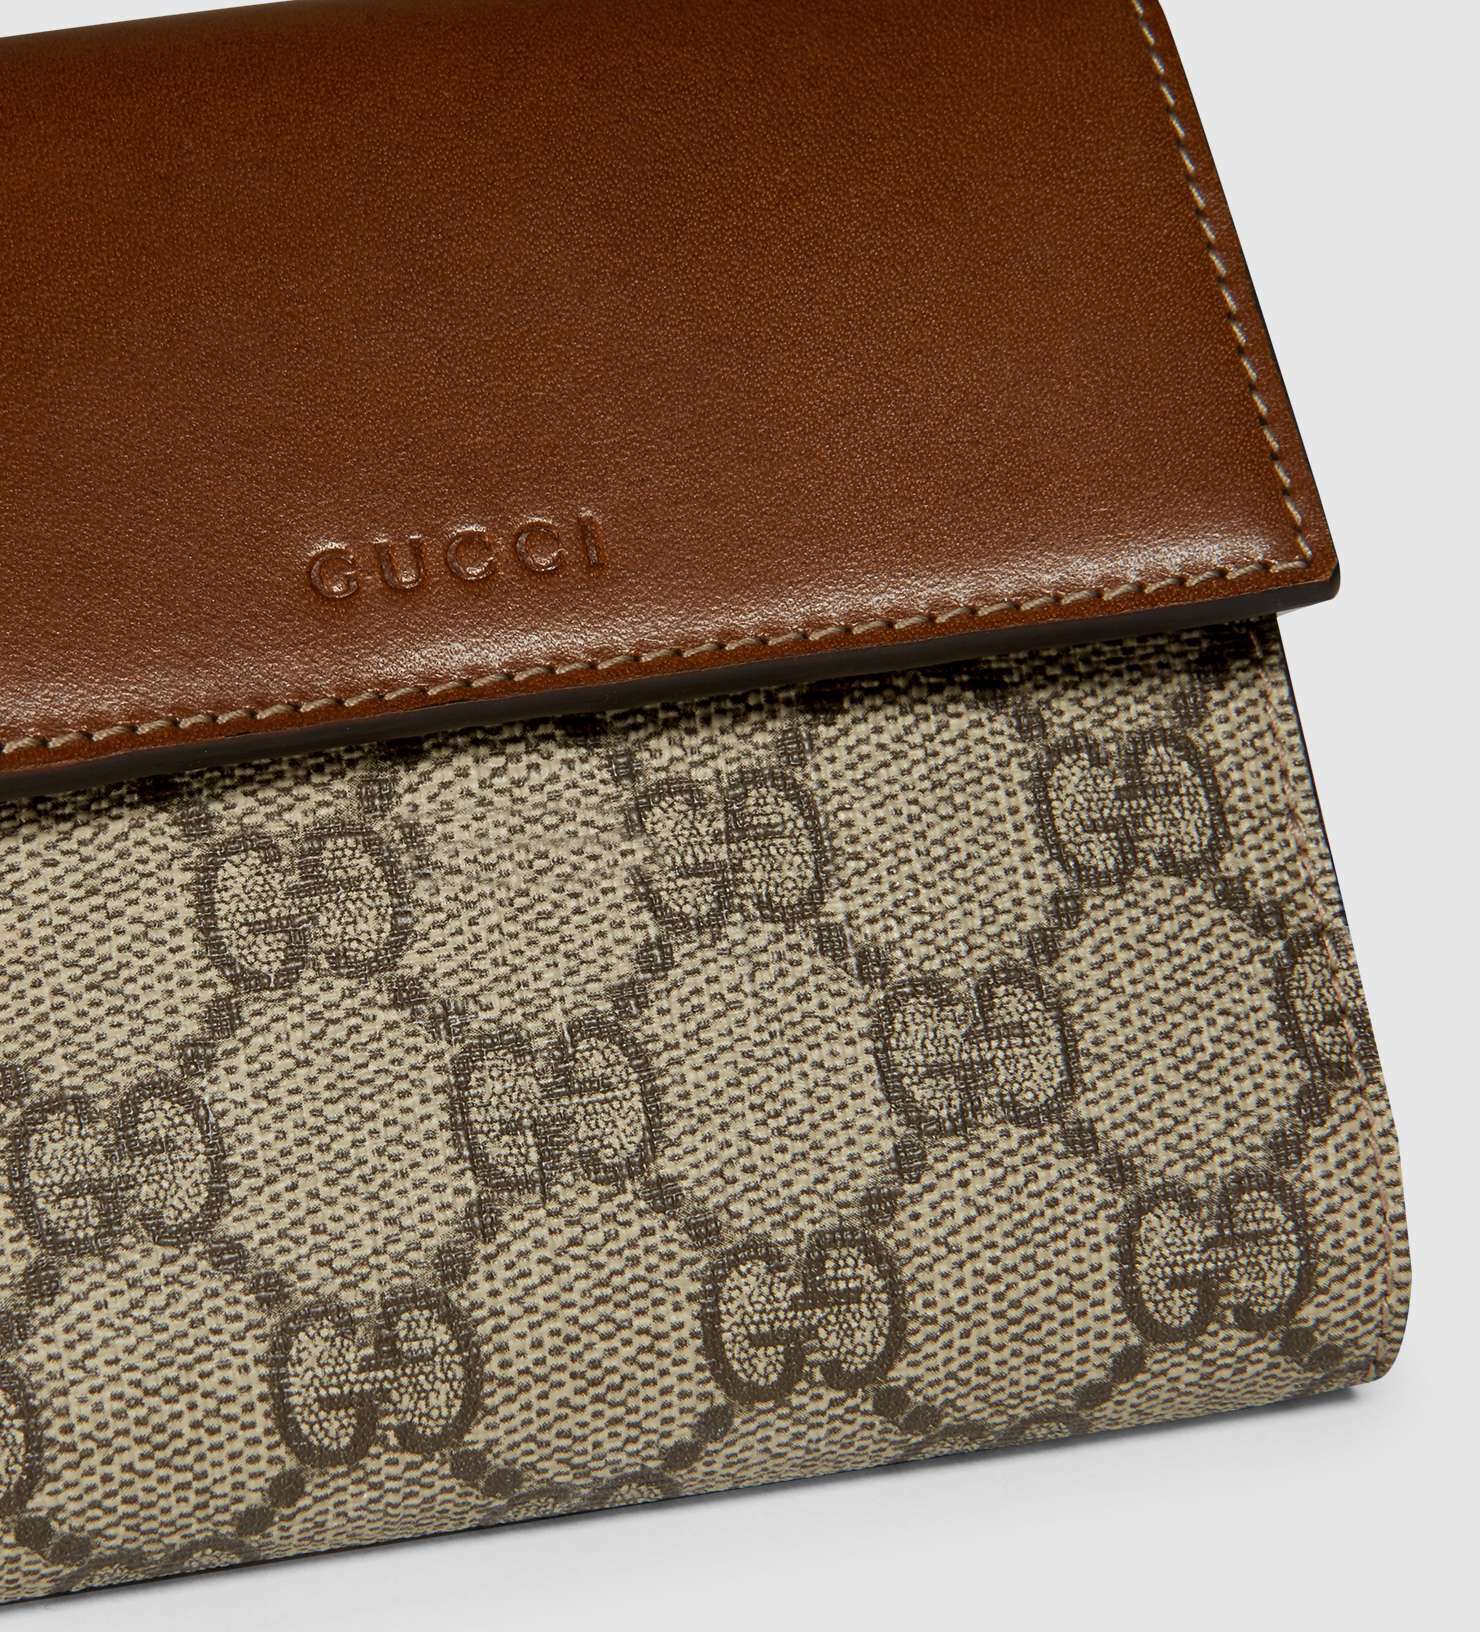 64268d12c8fc Gucci Gg Supreme French Flap Wallet in Brown - Lyst